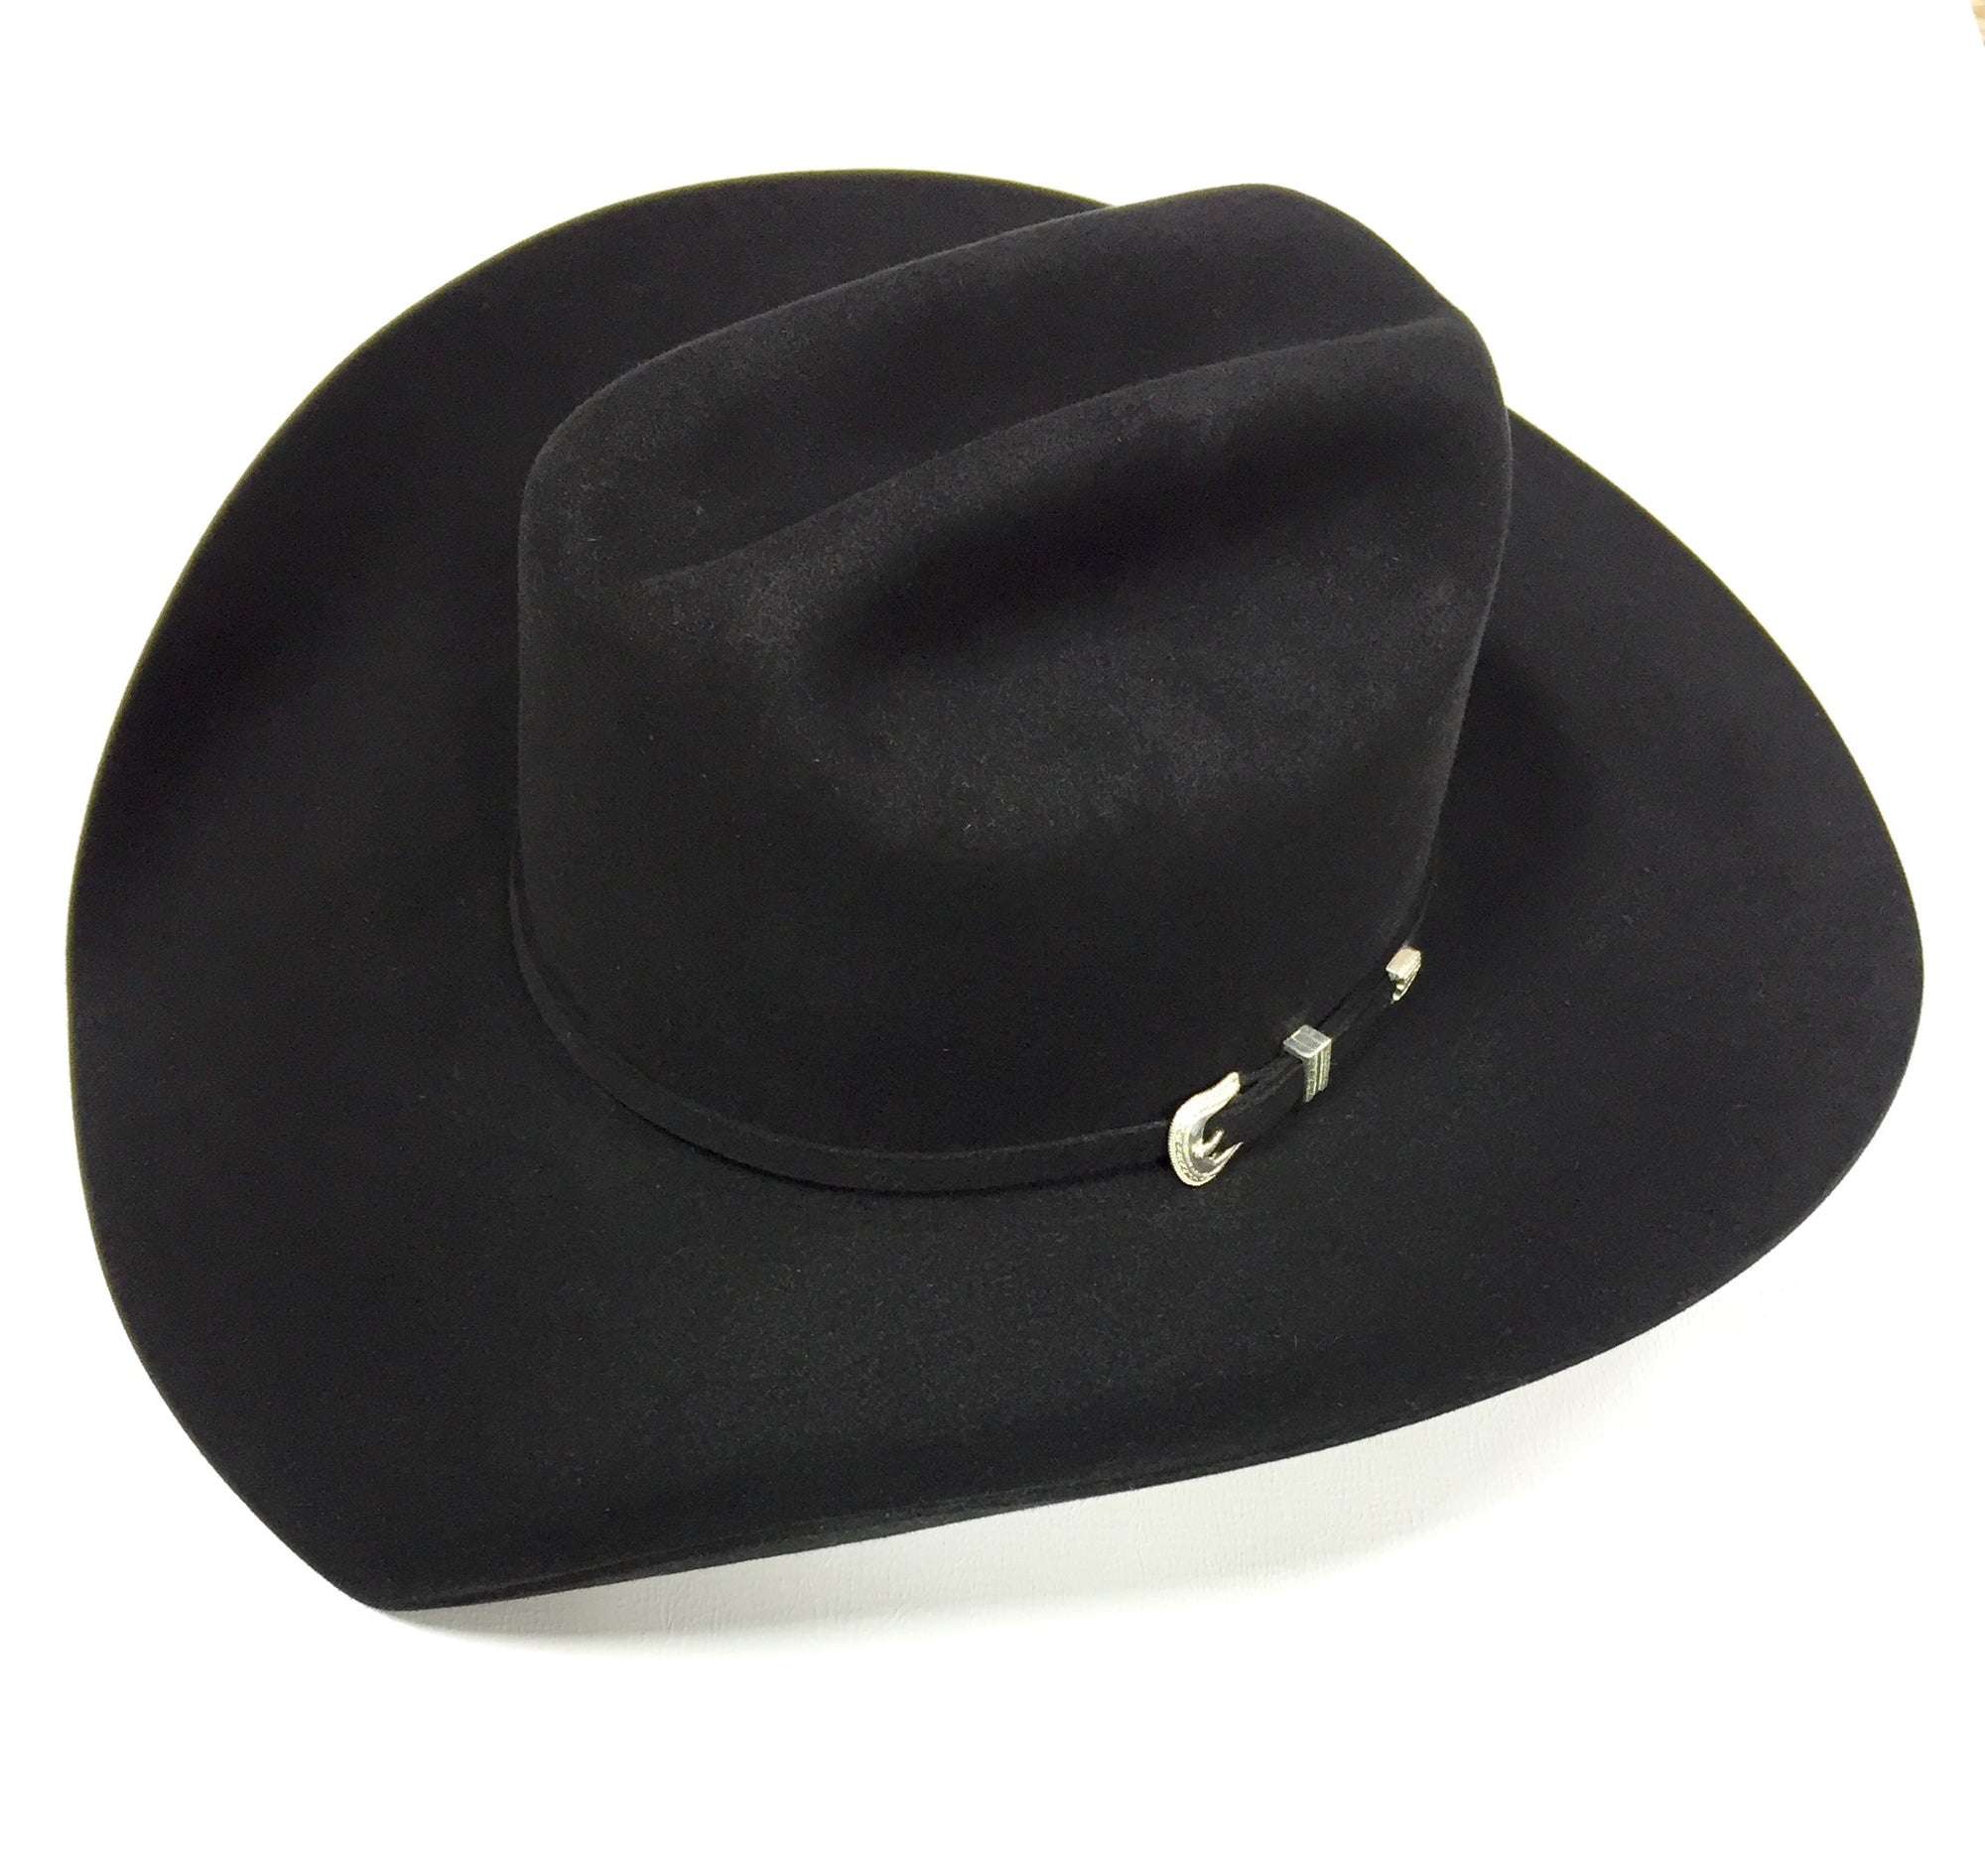 Black 7X 4 1/4 Brim Felt Hat by American Hat Co.